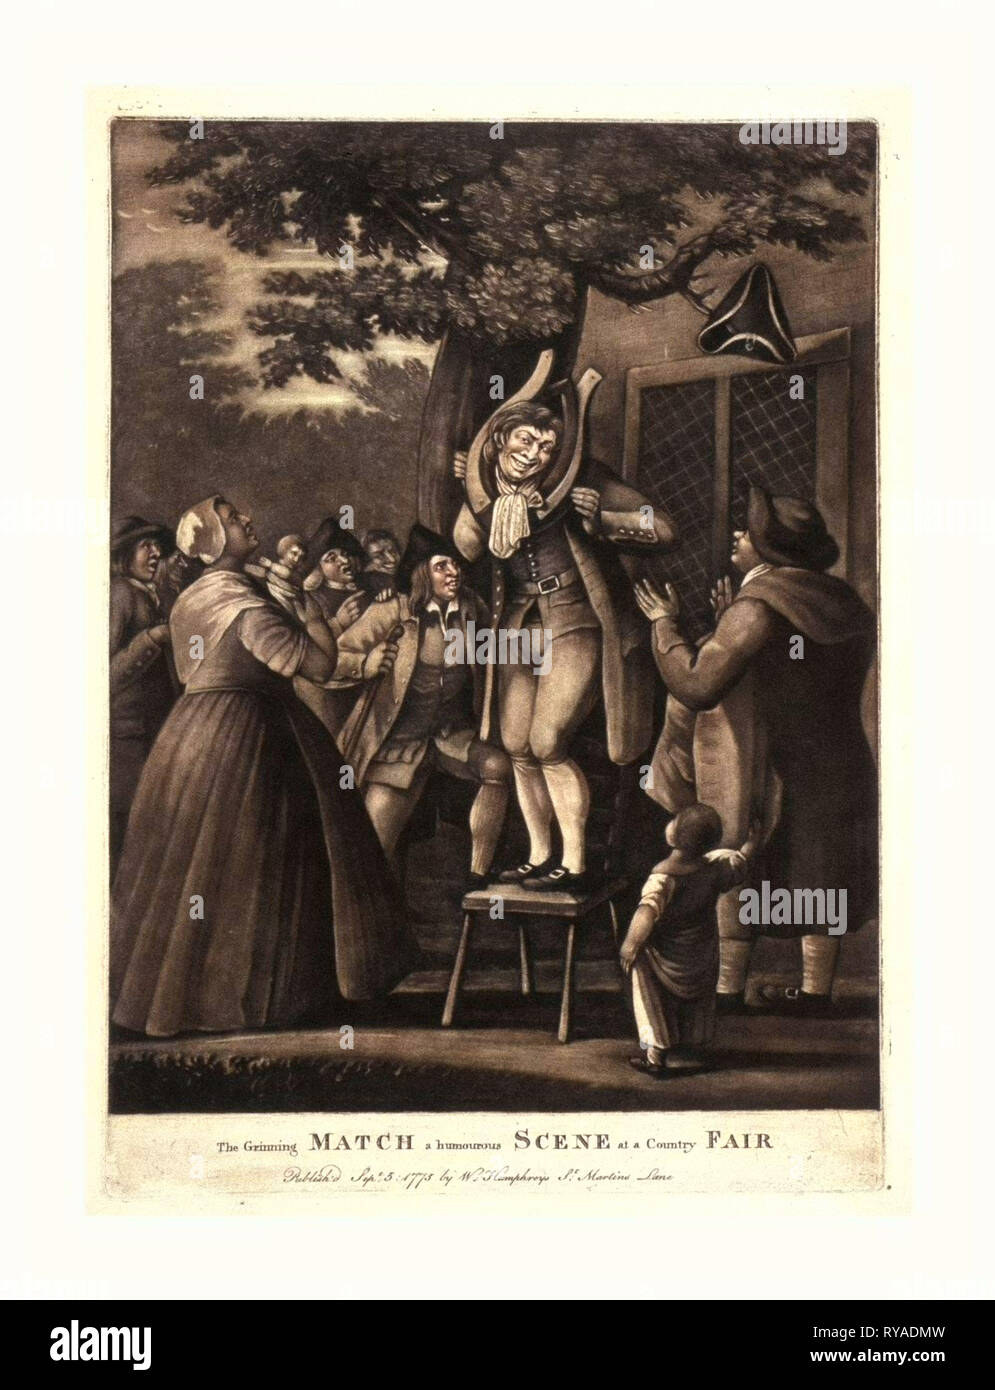 The Grinning Match, a Humourous Scene at a Country Fair, Engraving 1775, Mezzotint., a Man Stands on a Chair Beneath a Large, Spreading Tree on which a Tri-Corn Hat Hangs from a Limb, His Grinning Face Framed by a Horse-Collar, a Woman and a Man Look on in the Foreground, the Man Applauds, While a Crowd of Countrymen on the Left, in the Rear, Encourage Him with Laughter and Applause, with Building on the Right, in the Background - Stock Image